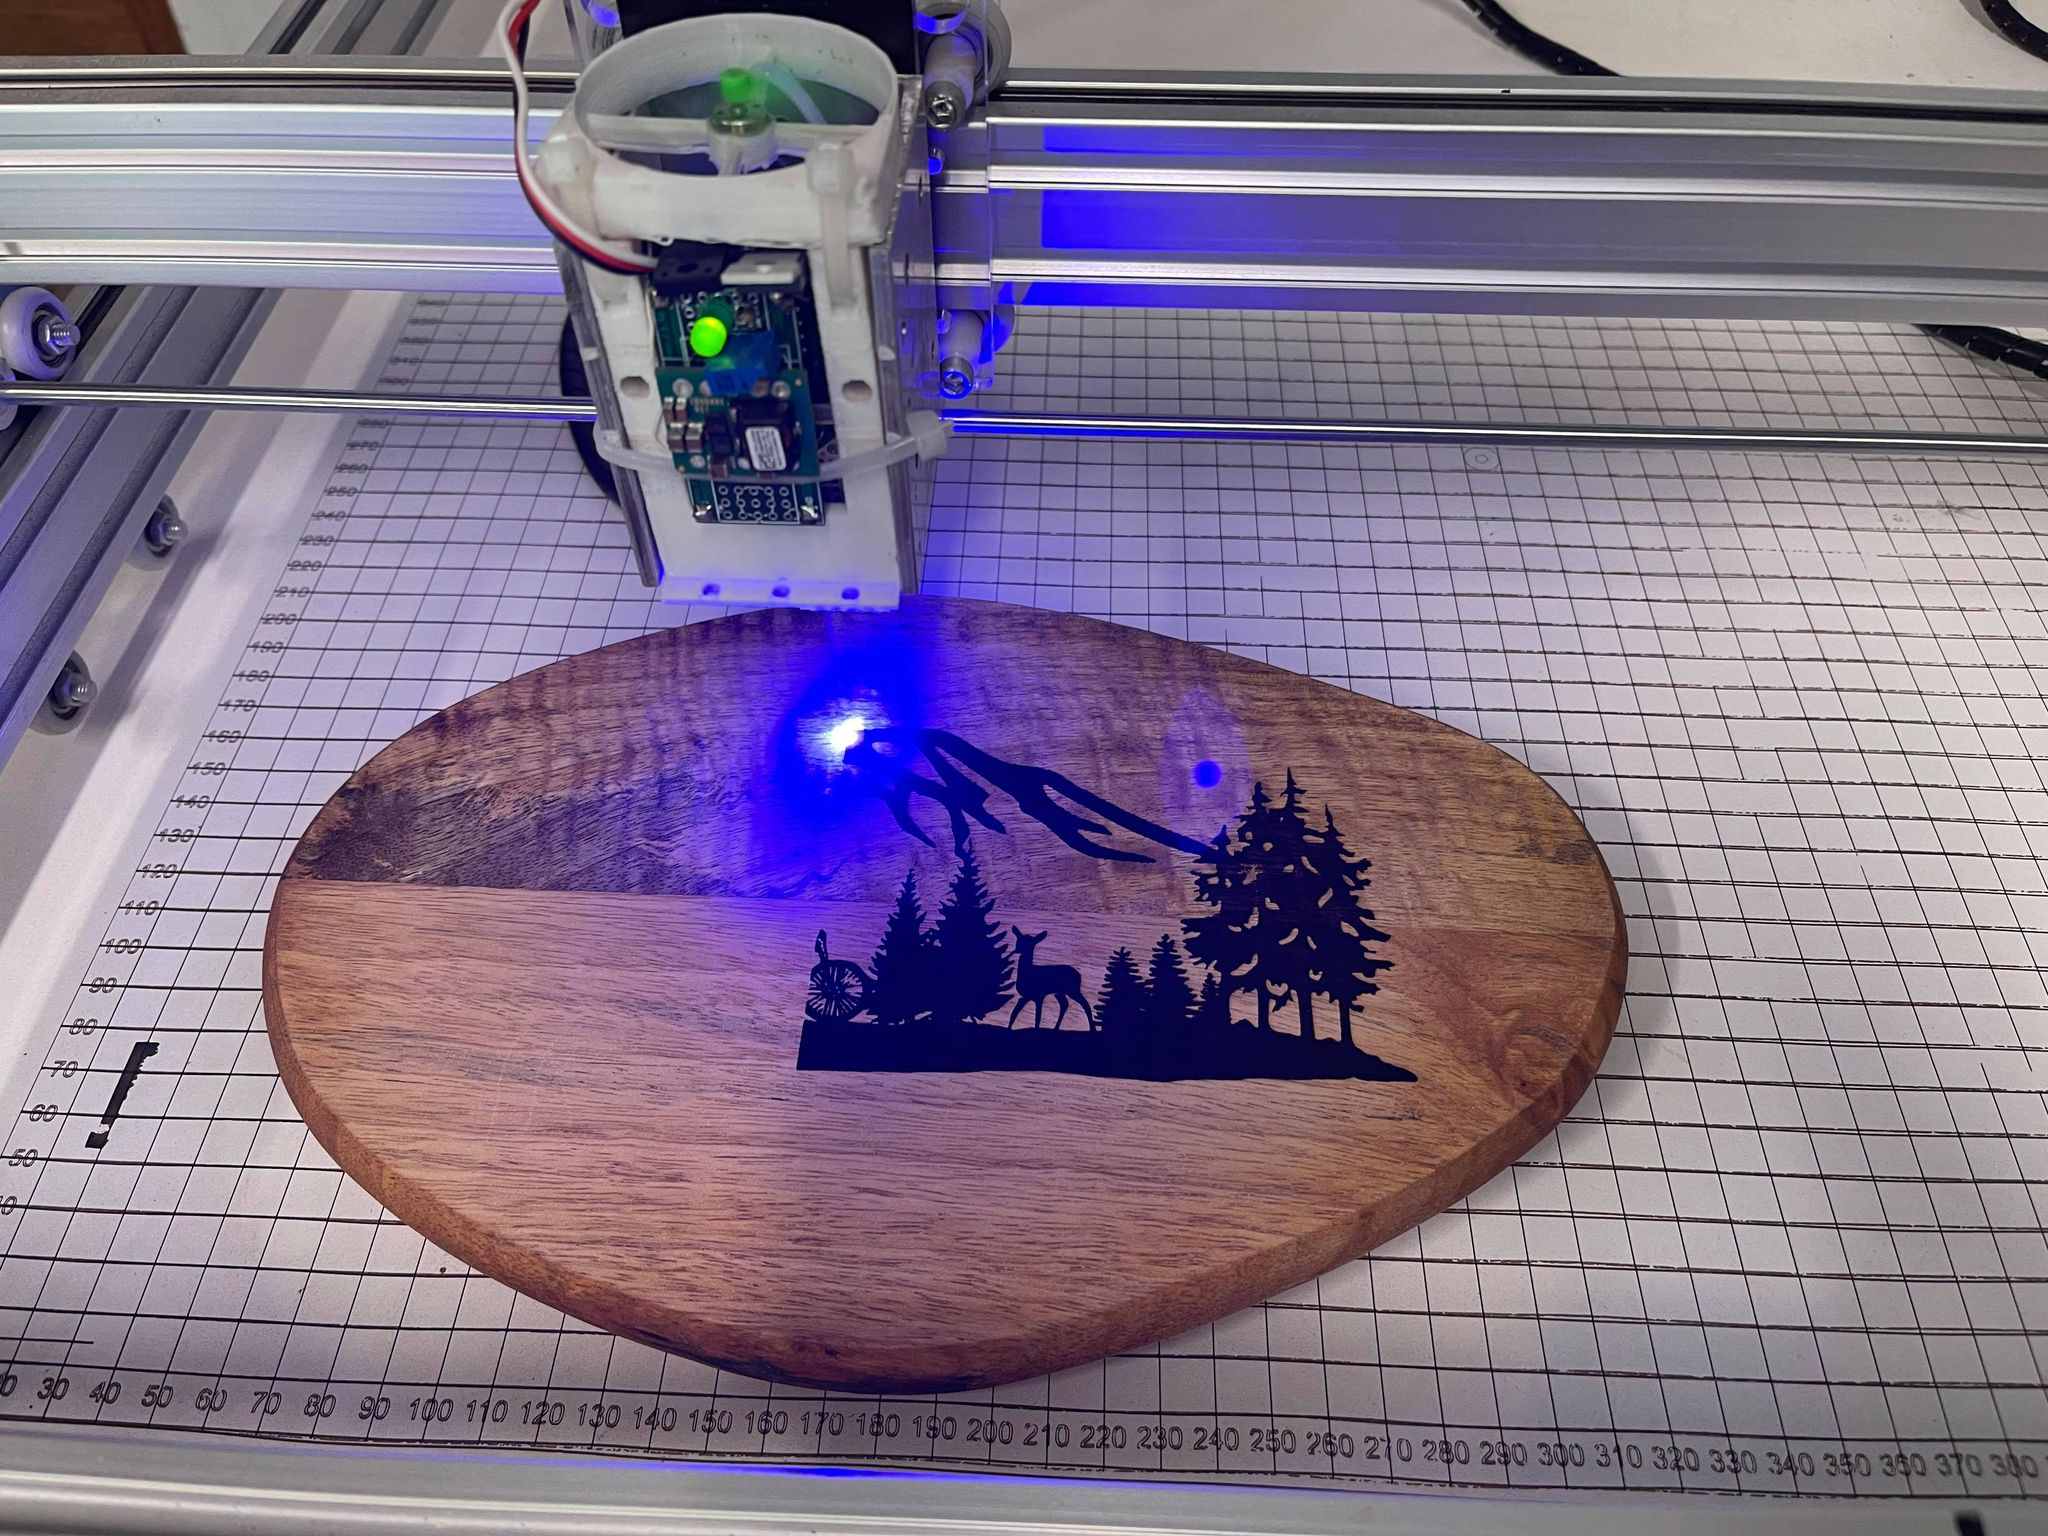 An L-Cheapo Mk7 Laser Cutter burning a pattern into a wood log